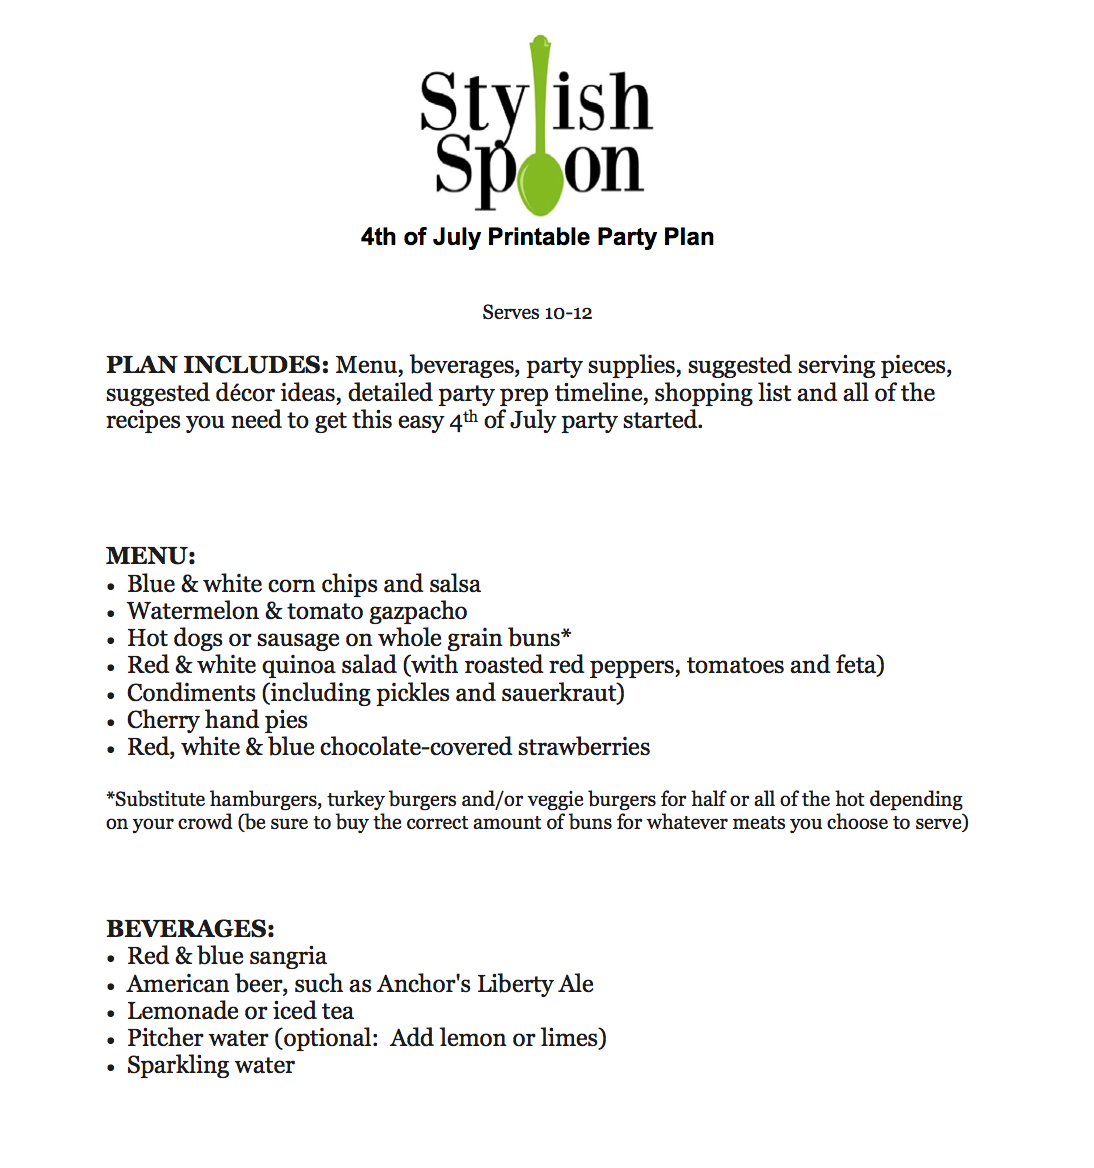 Printable Party Plan :: Easy 4th Of July Menu, Recipes